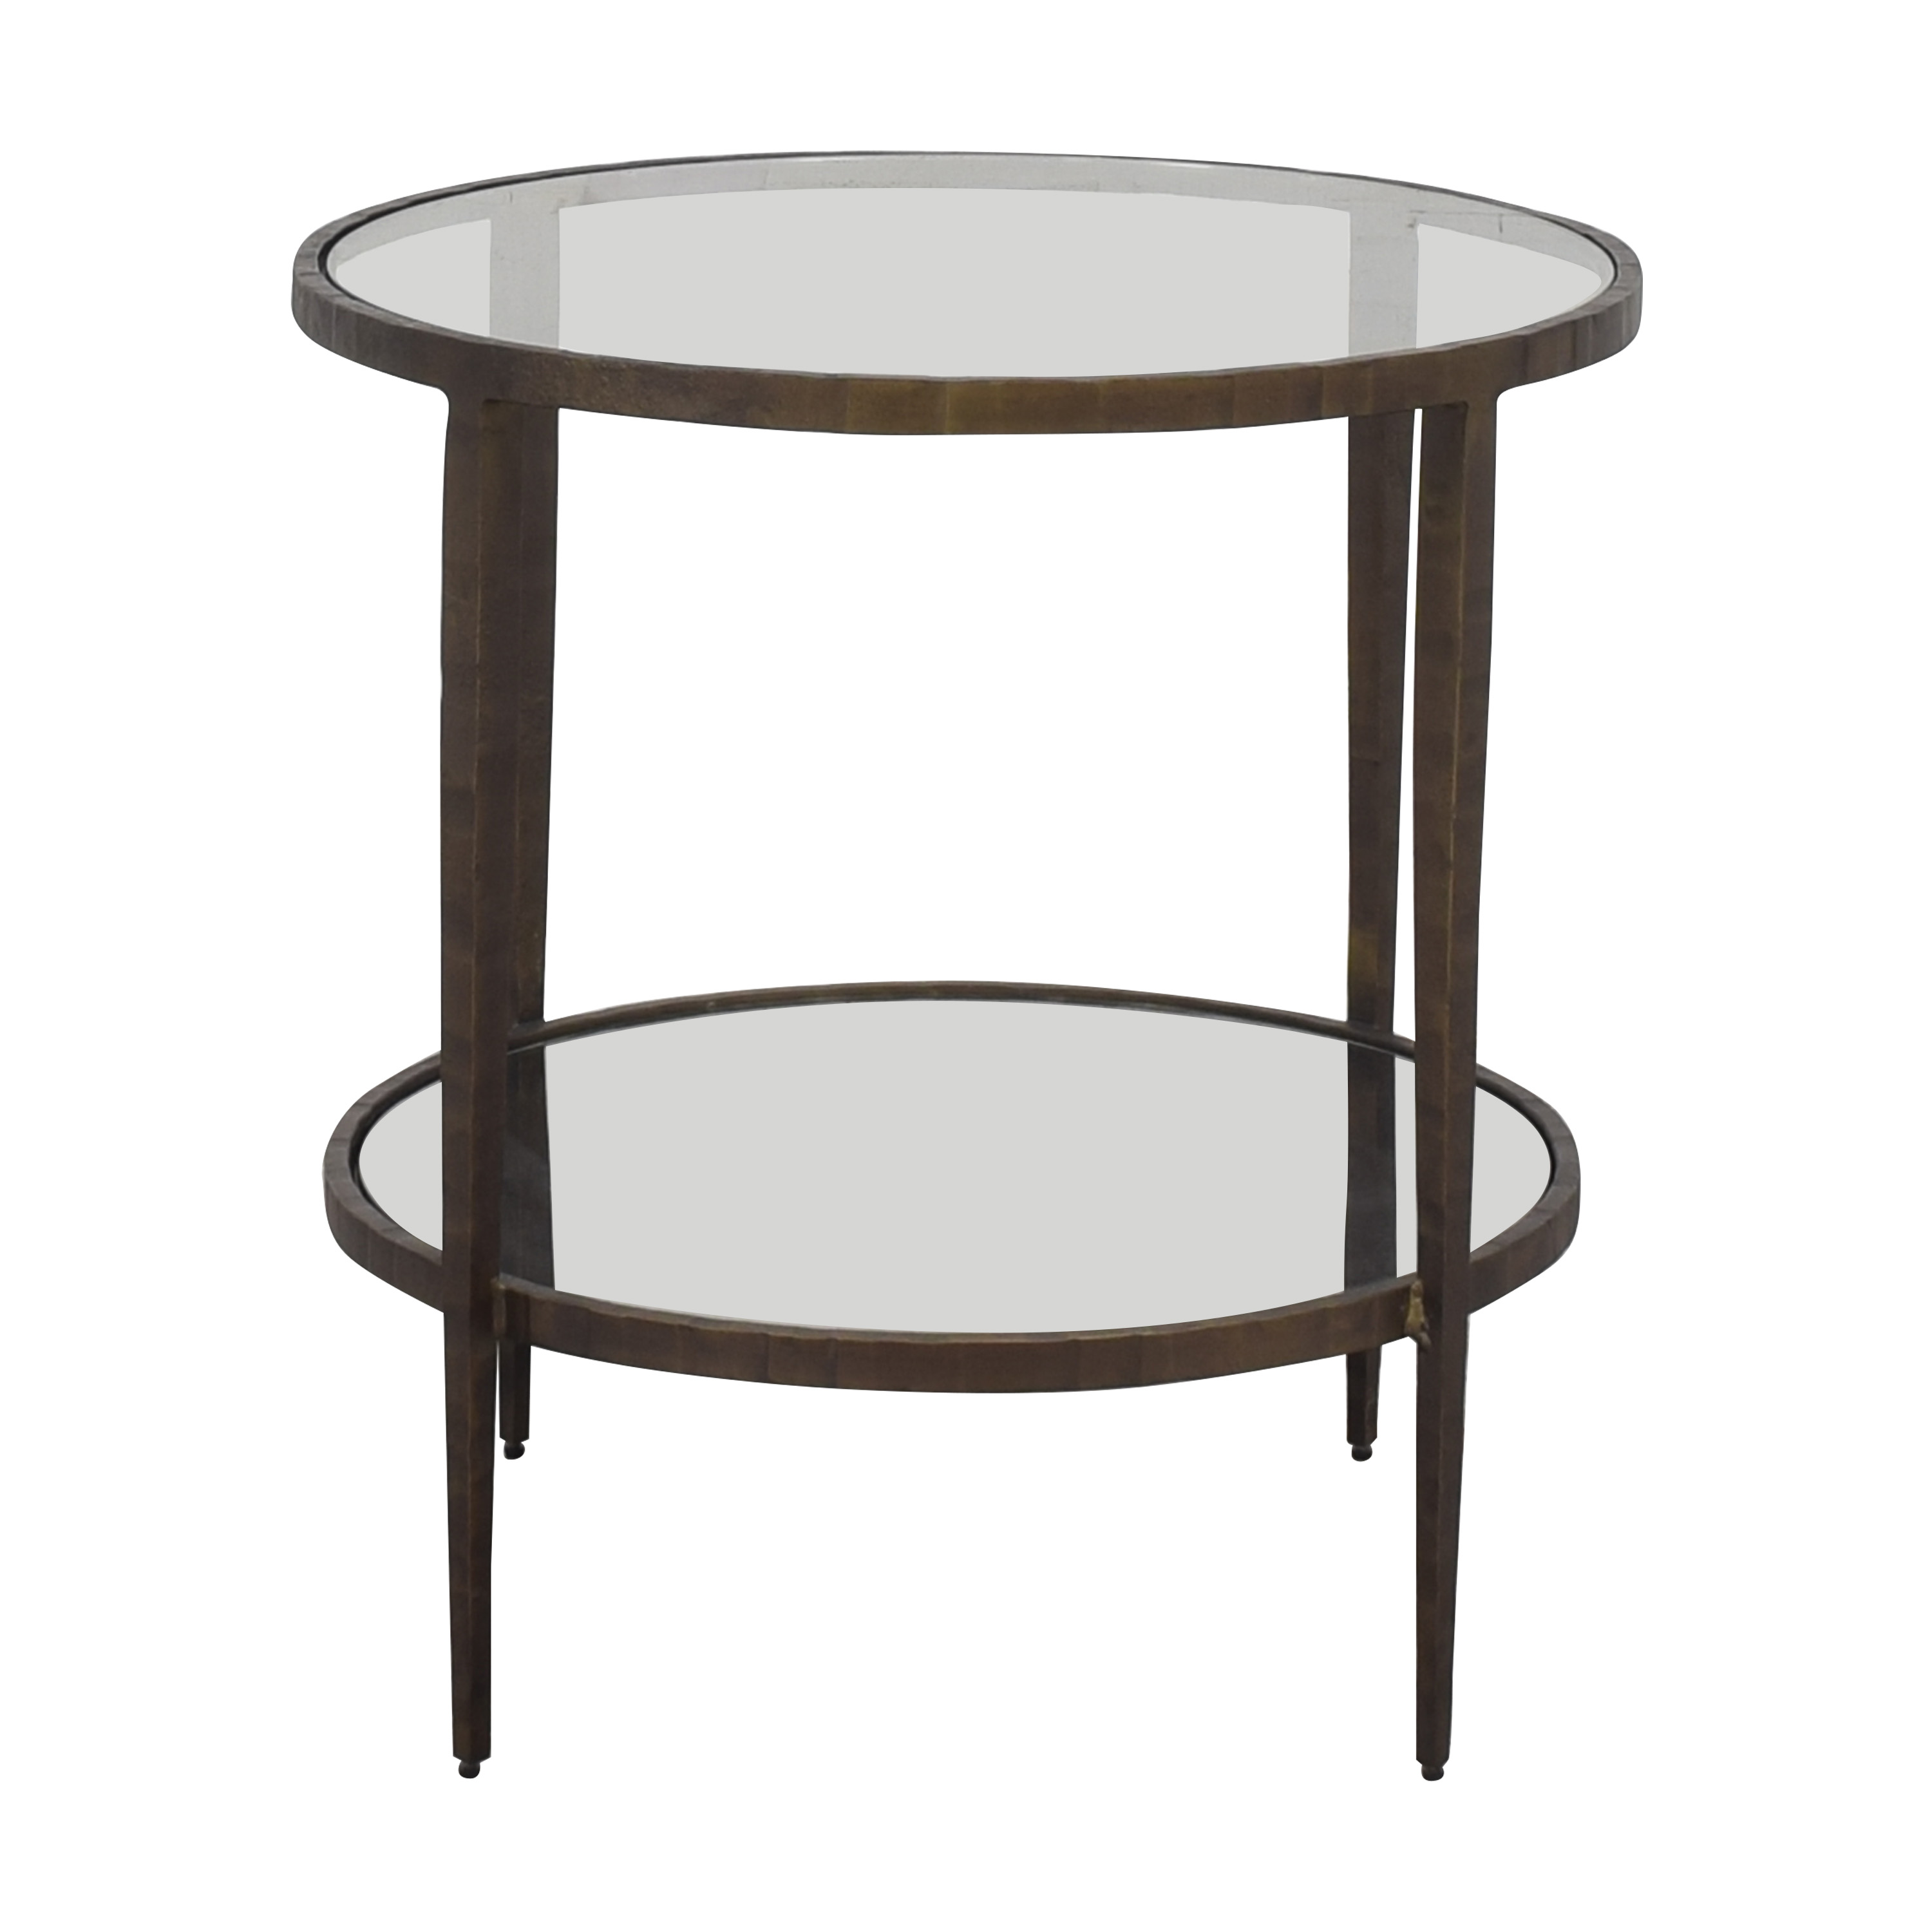 Crate & Barrel Crate & Barrel Clairemont Side Table coupon